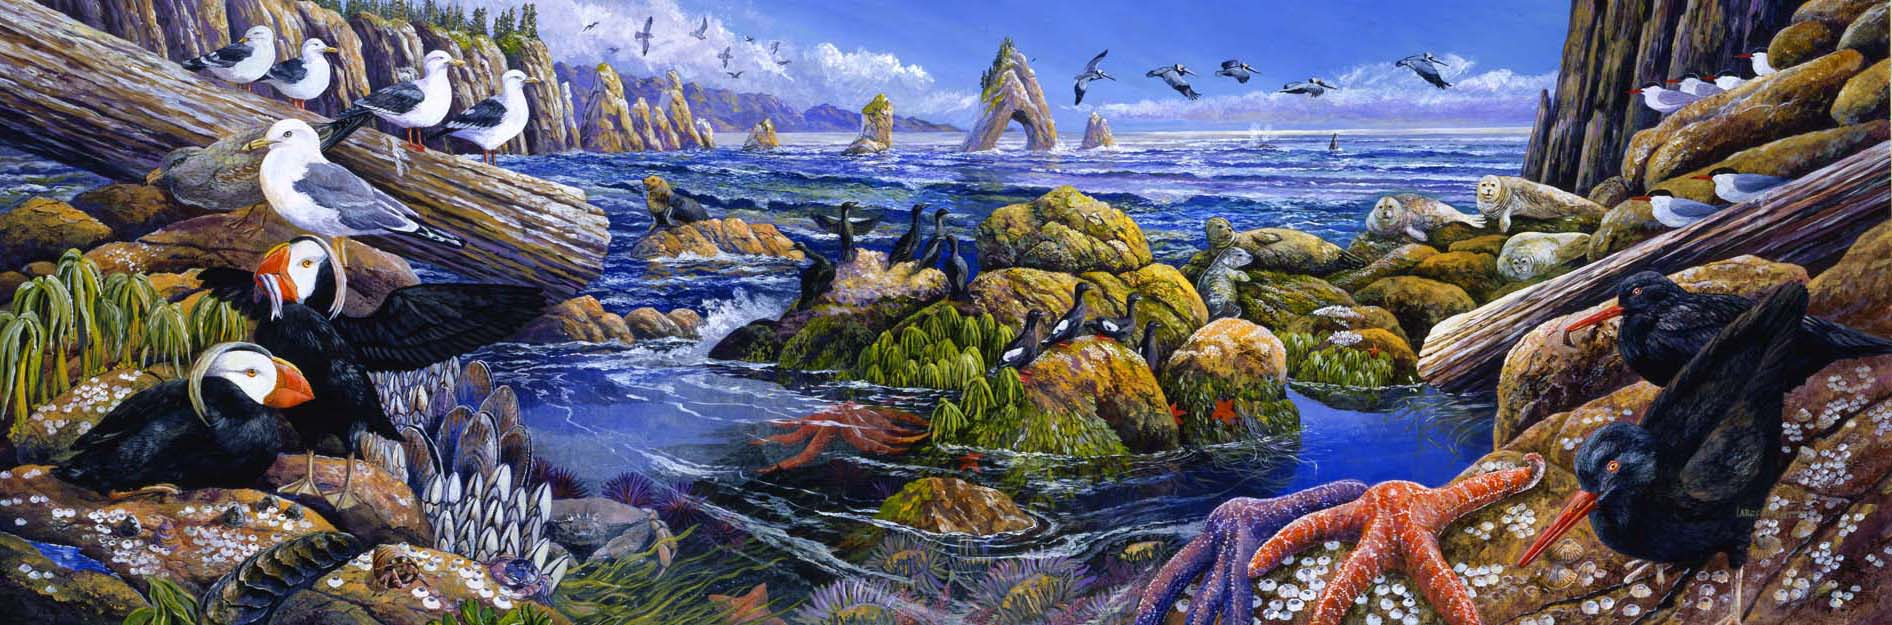 Eifert_Oregon_Coast_painting